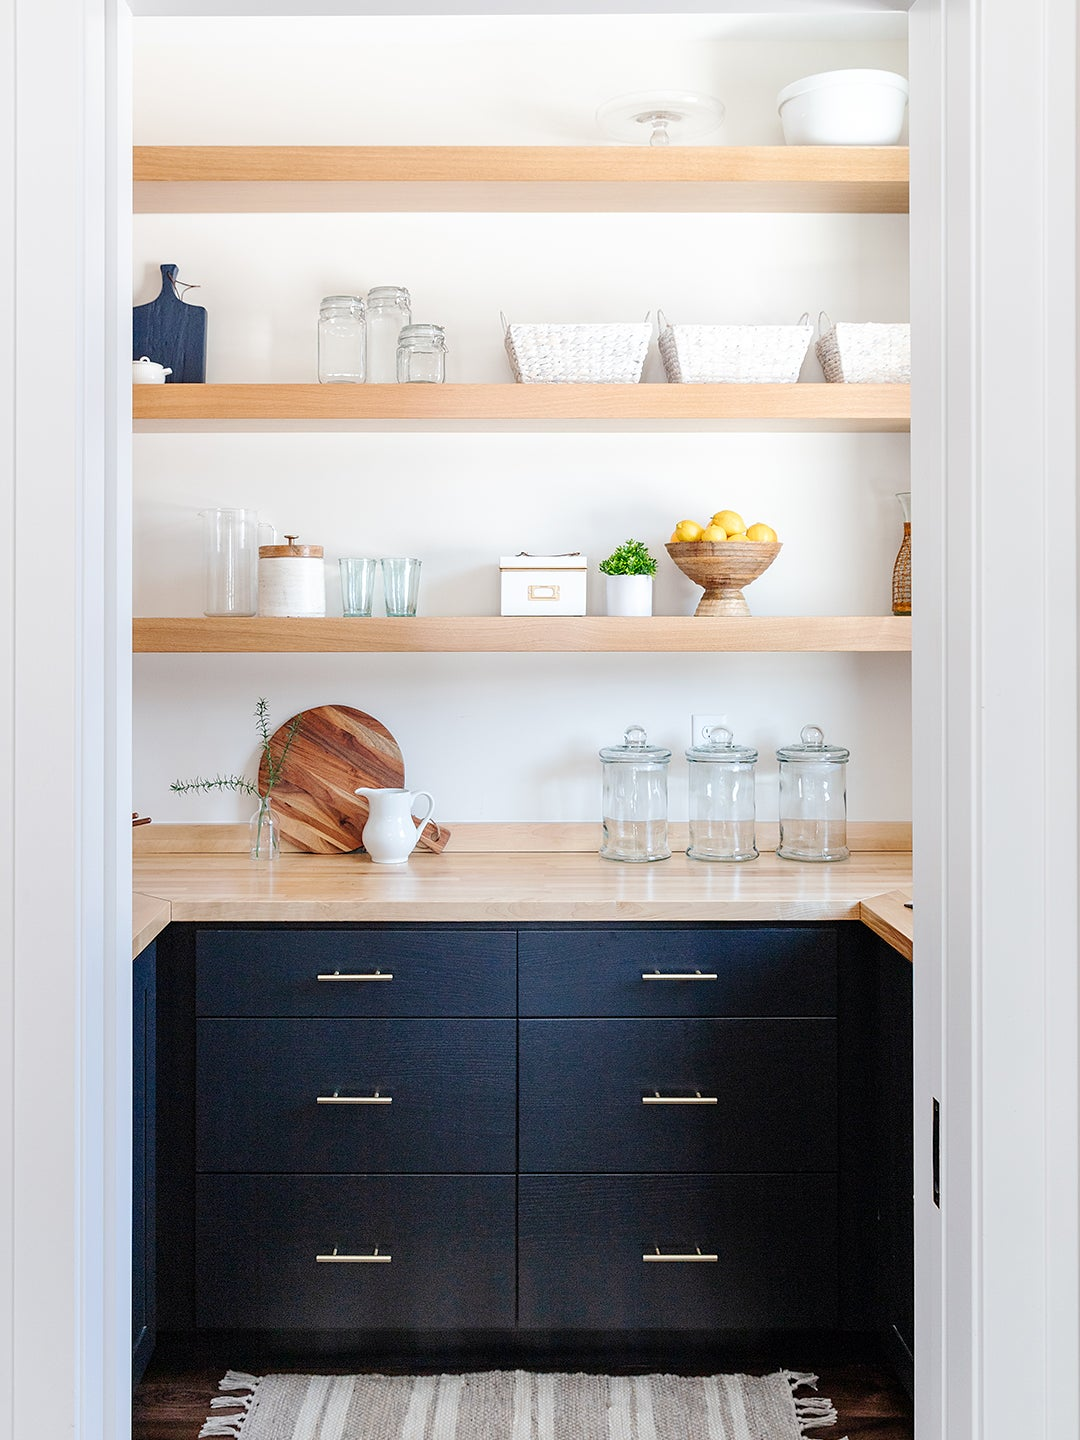 6 Experts Reveal Their No-Fail Pantry Organization Systems